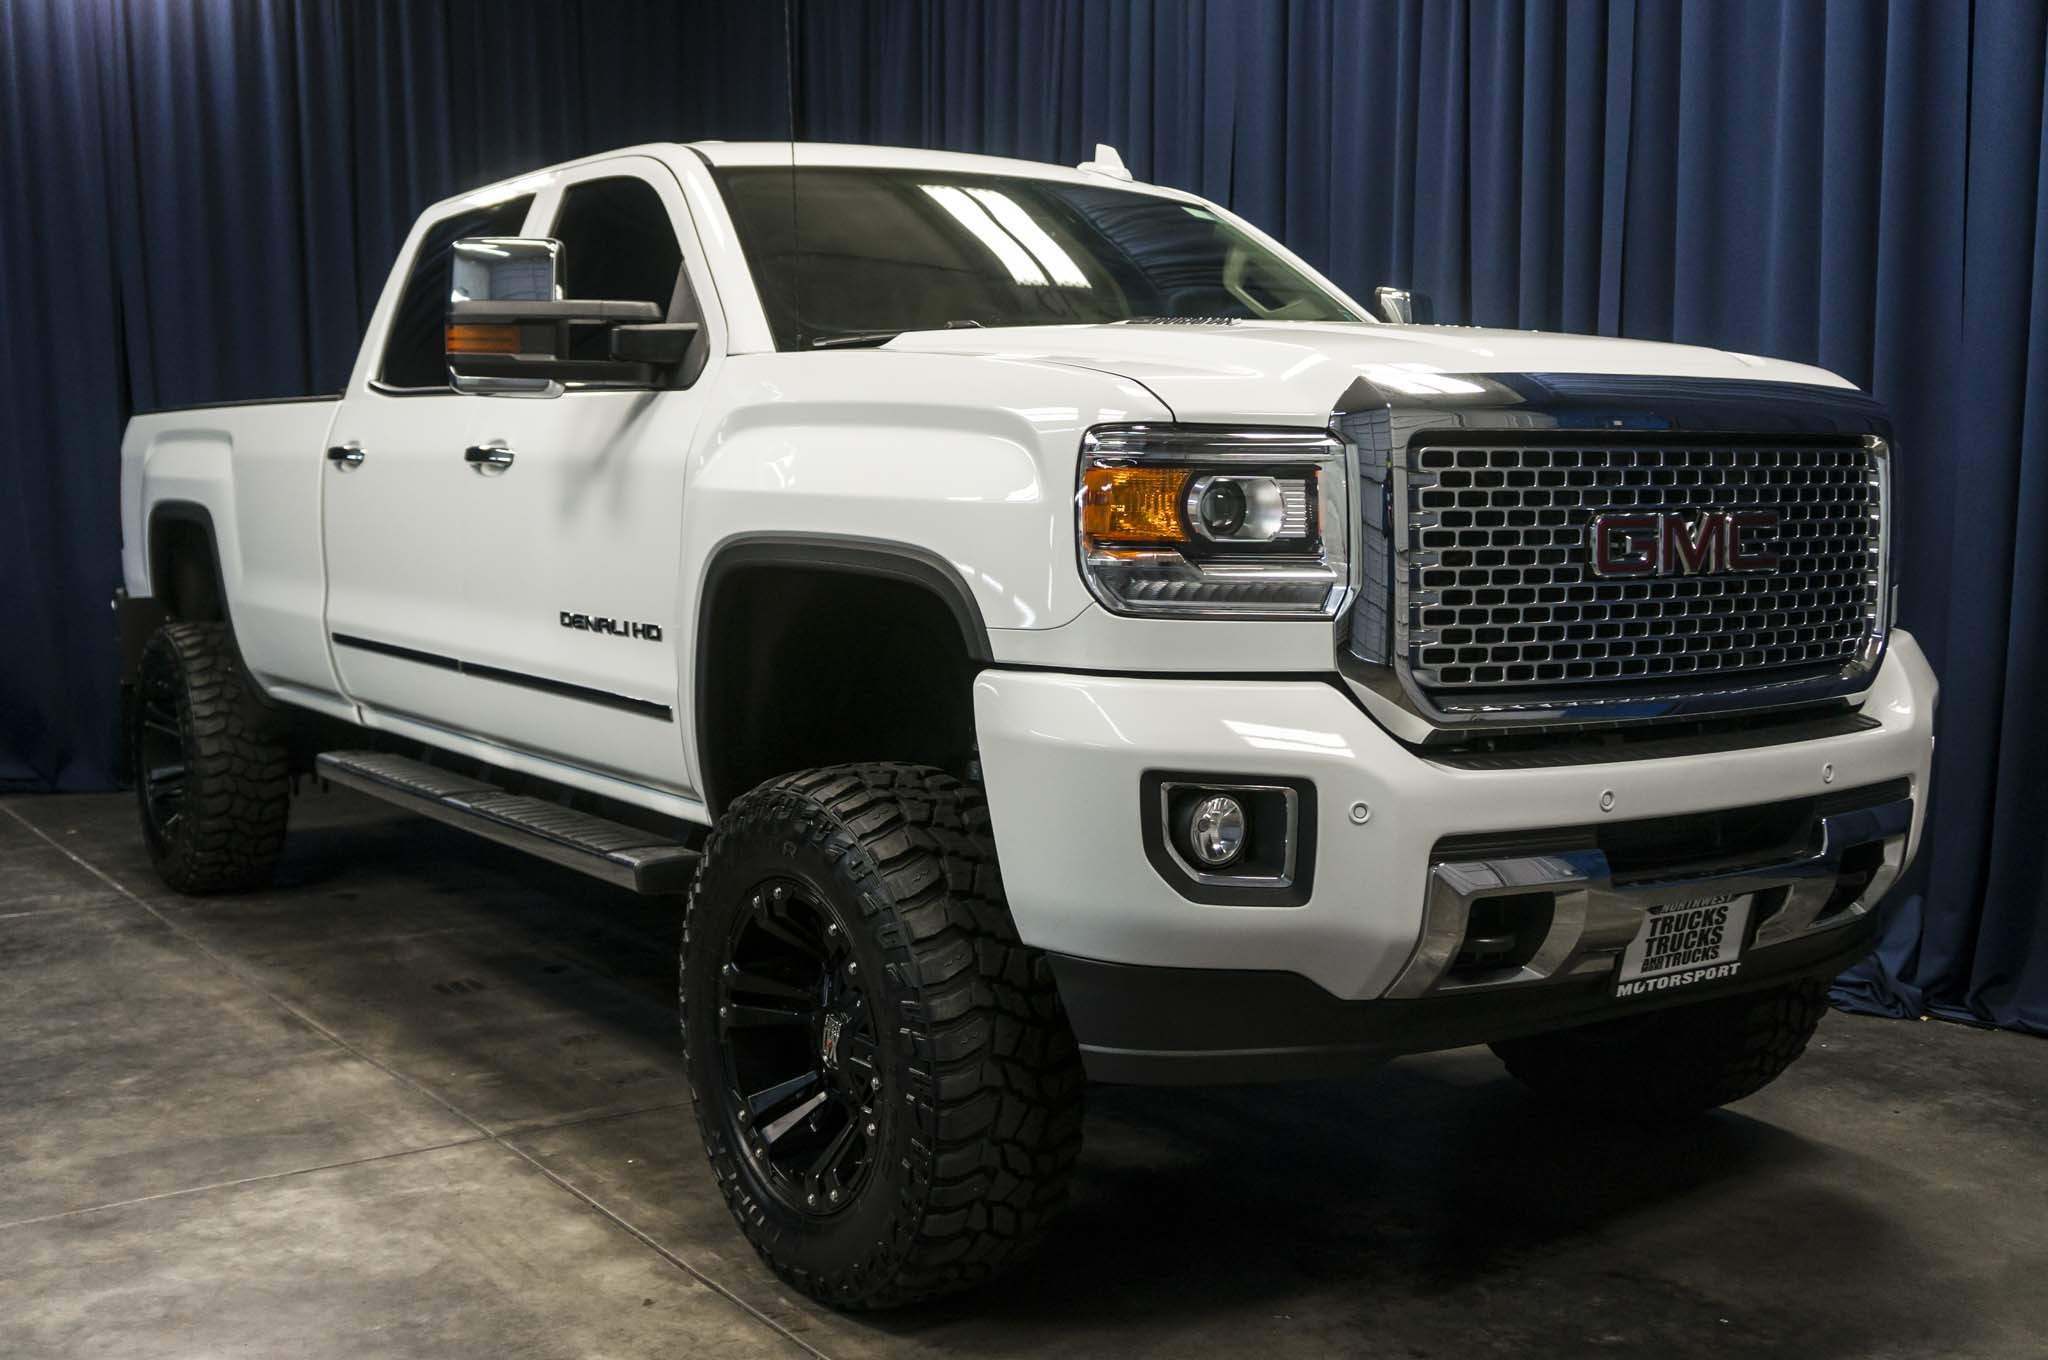 used lifted 2015 gmc sierra 3500hd denali 4x4 diesel truck for sale 37205. Black Bedroom Furniture Sets. Home Design Ideas